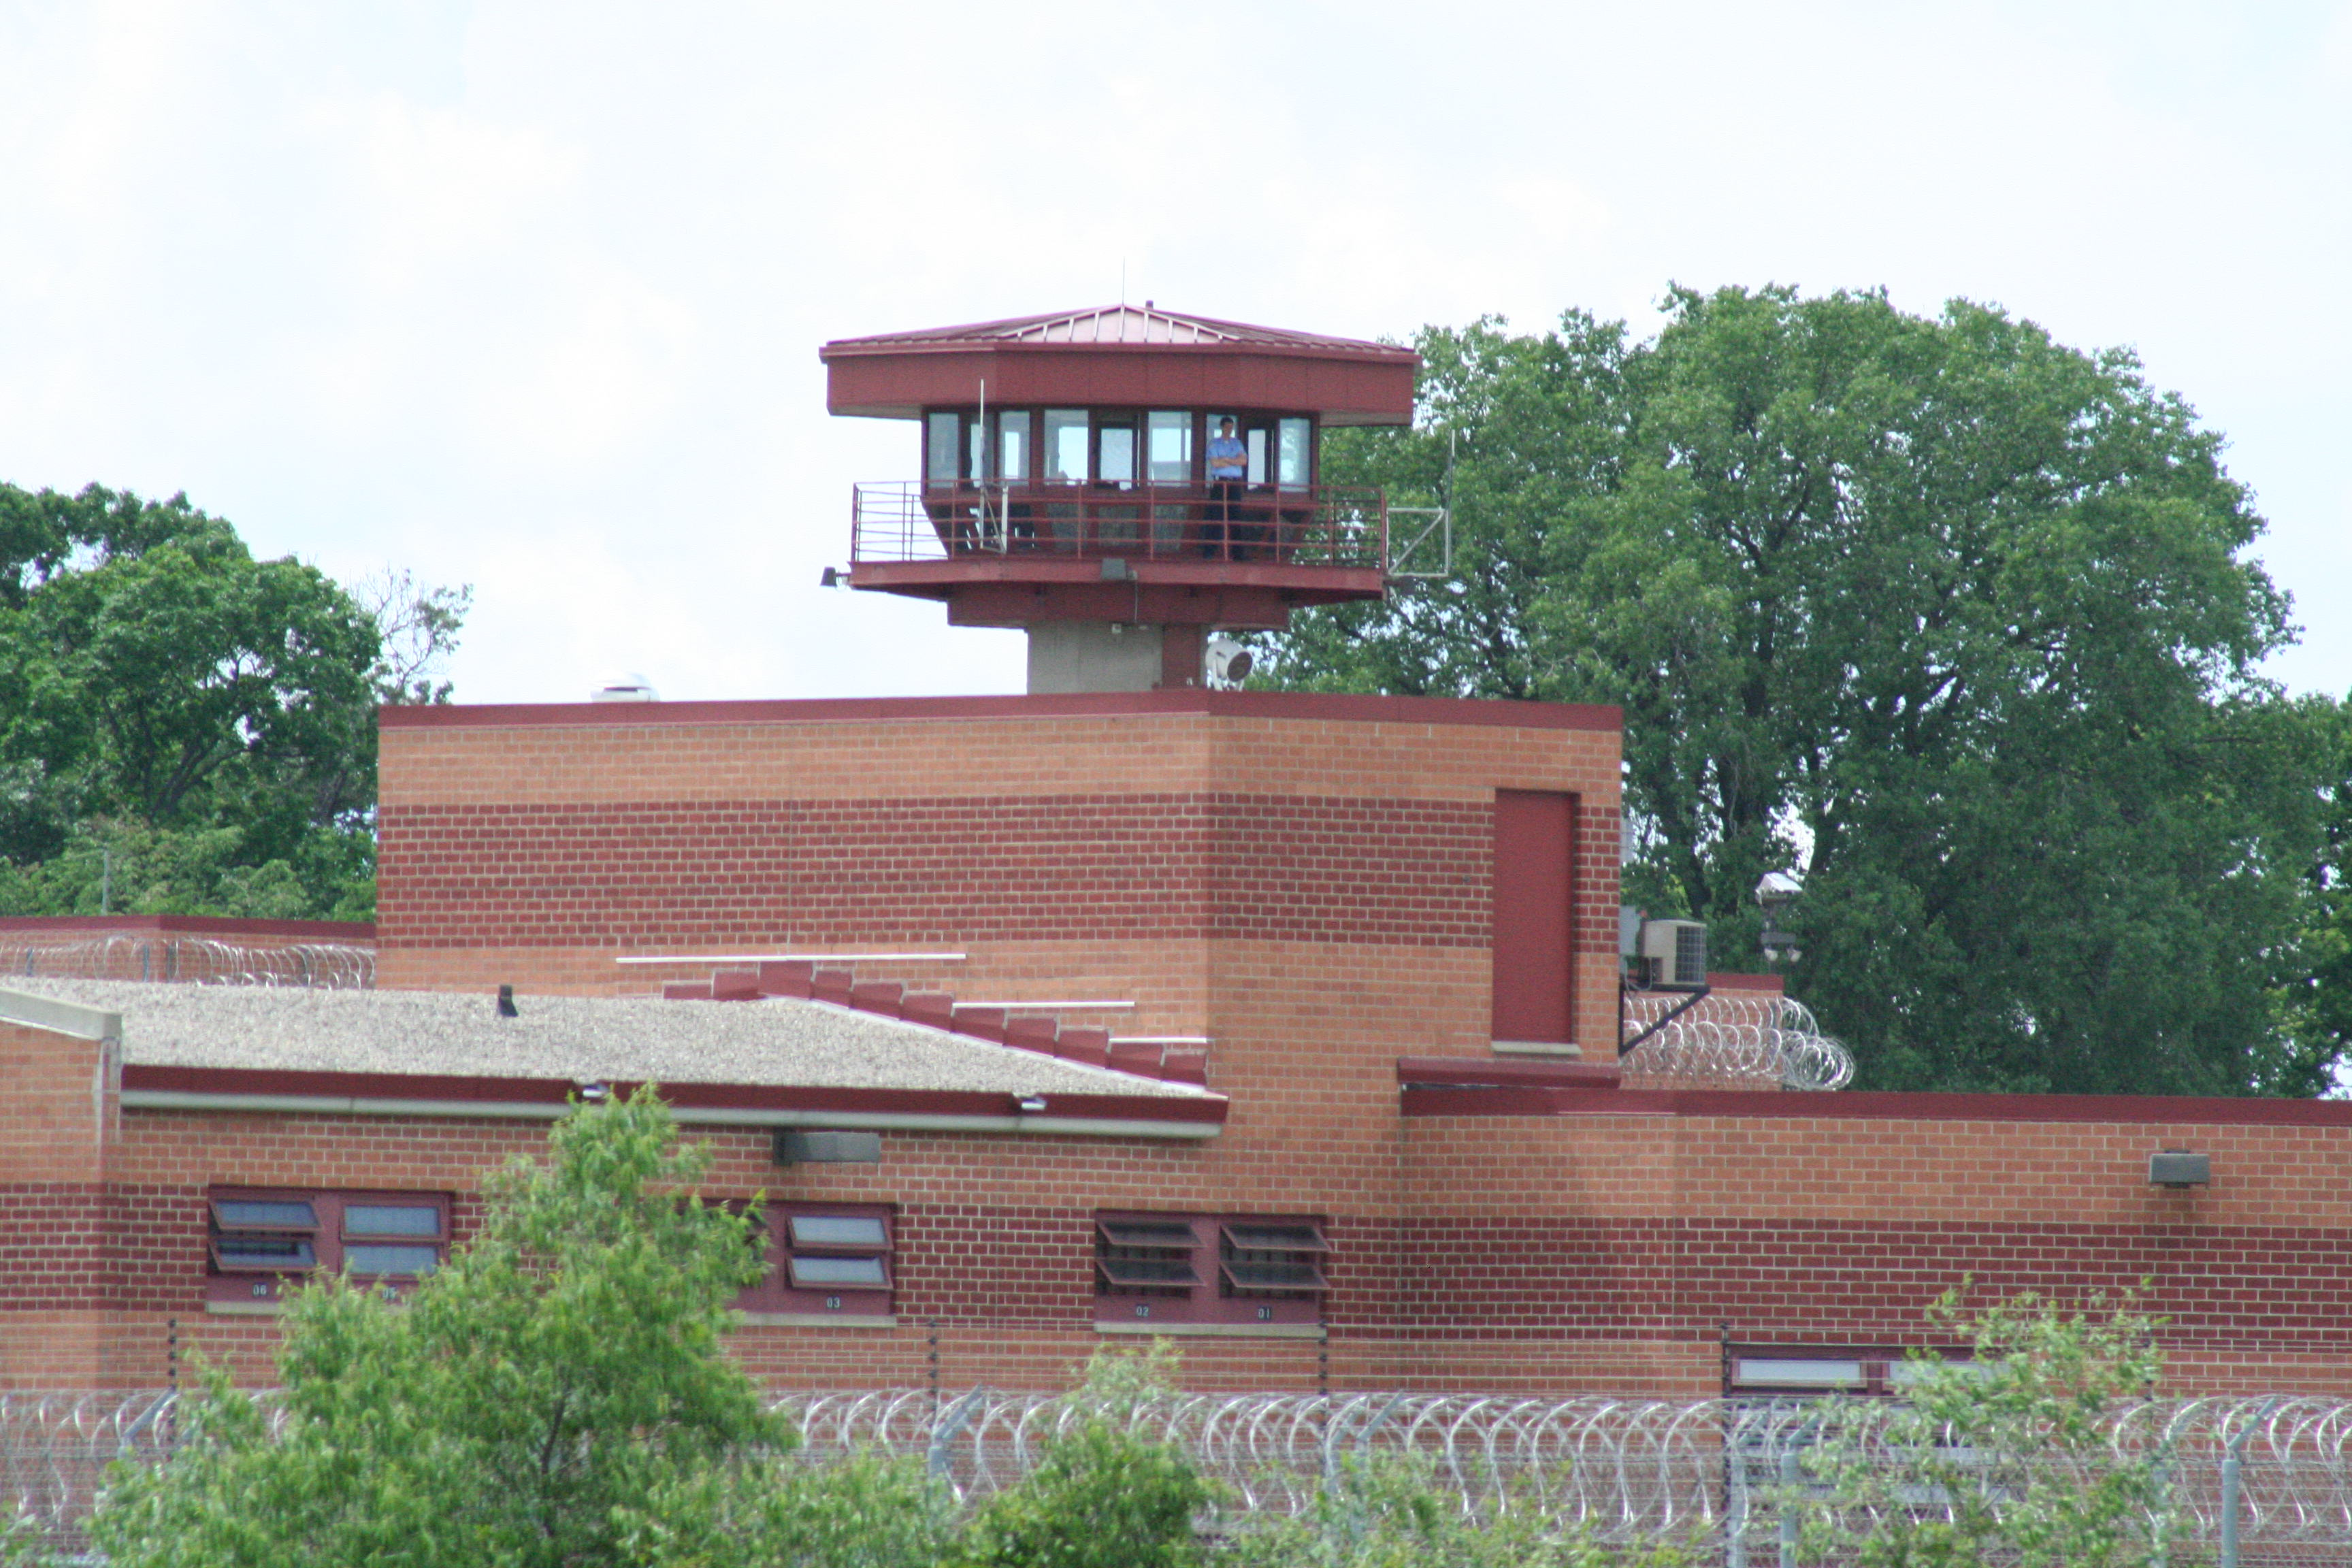 Prisoner Who Killed Jeffrey Dahmer Explains Why He Did It Columbia Correctional Institution Wisconsin with guard tower